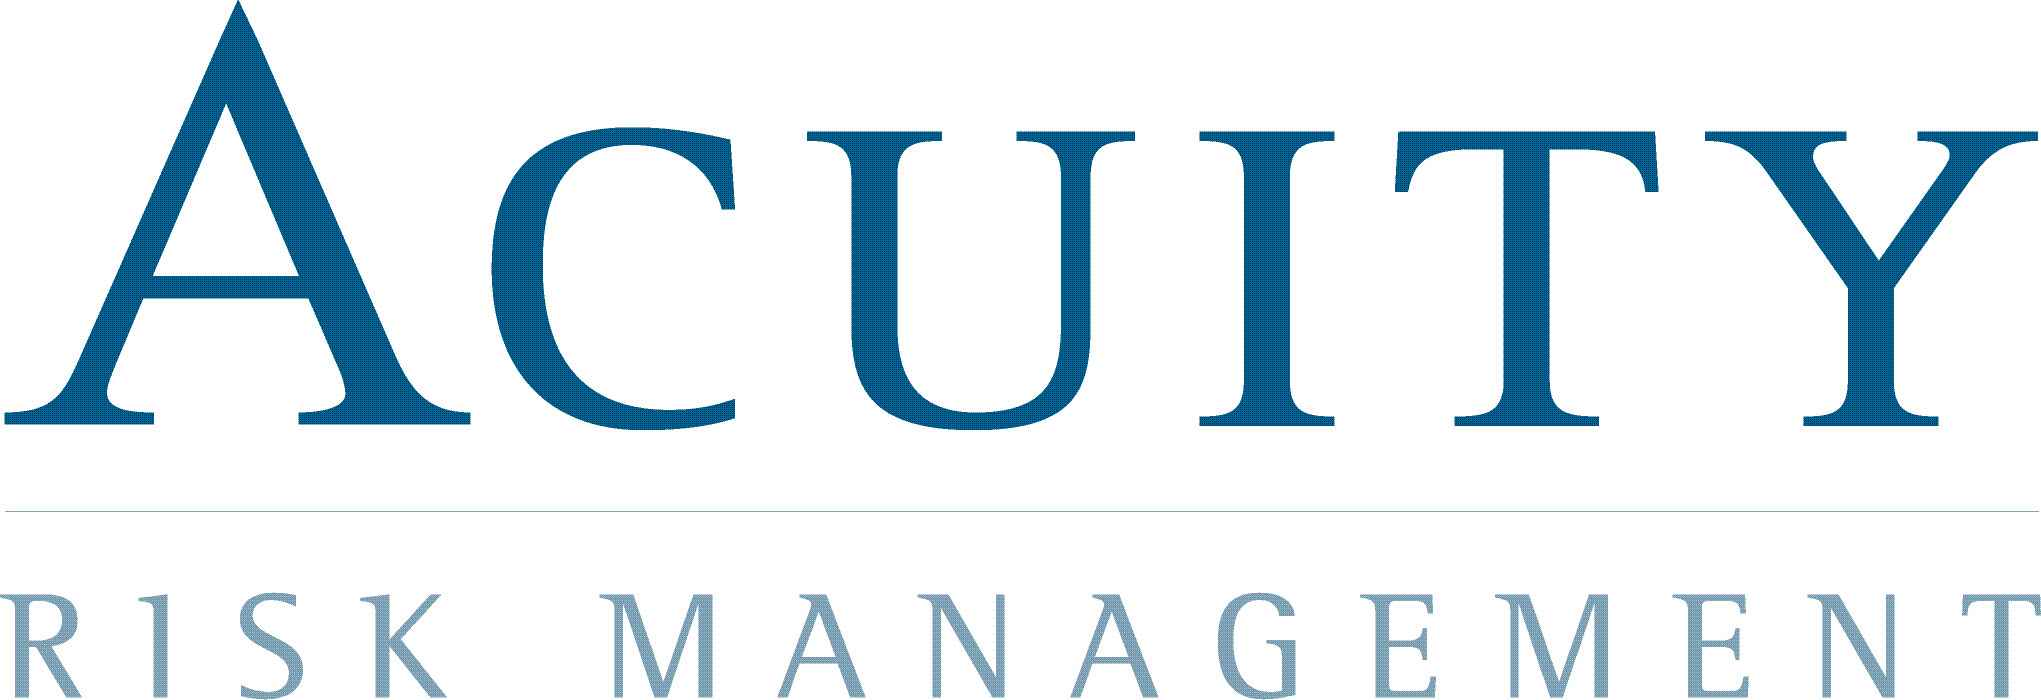 Cyber Risk Innovator Acuity Announces IRM event to support organizations with risk management evaluation challenges